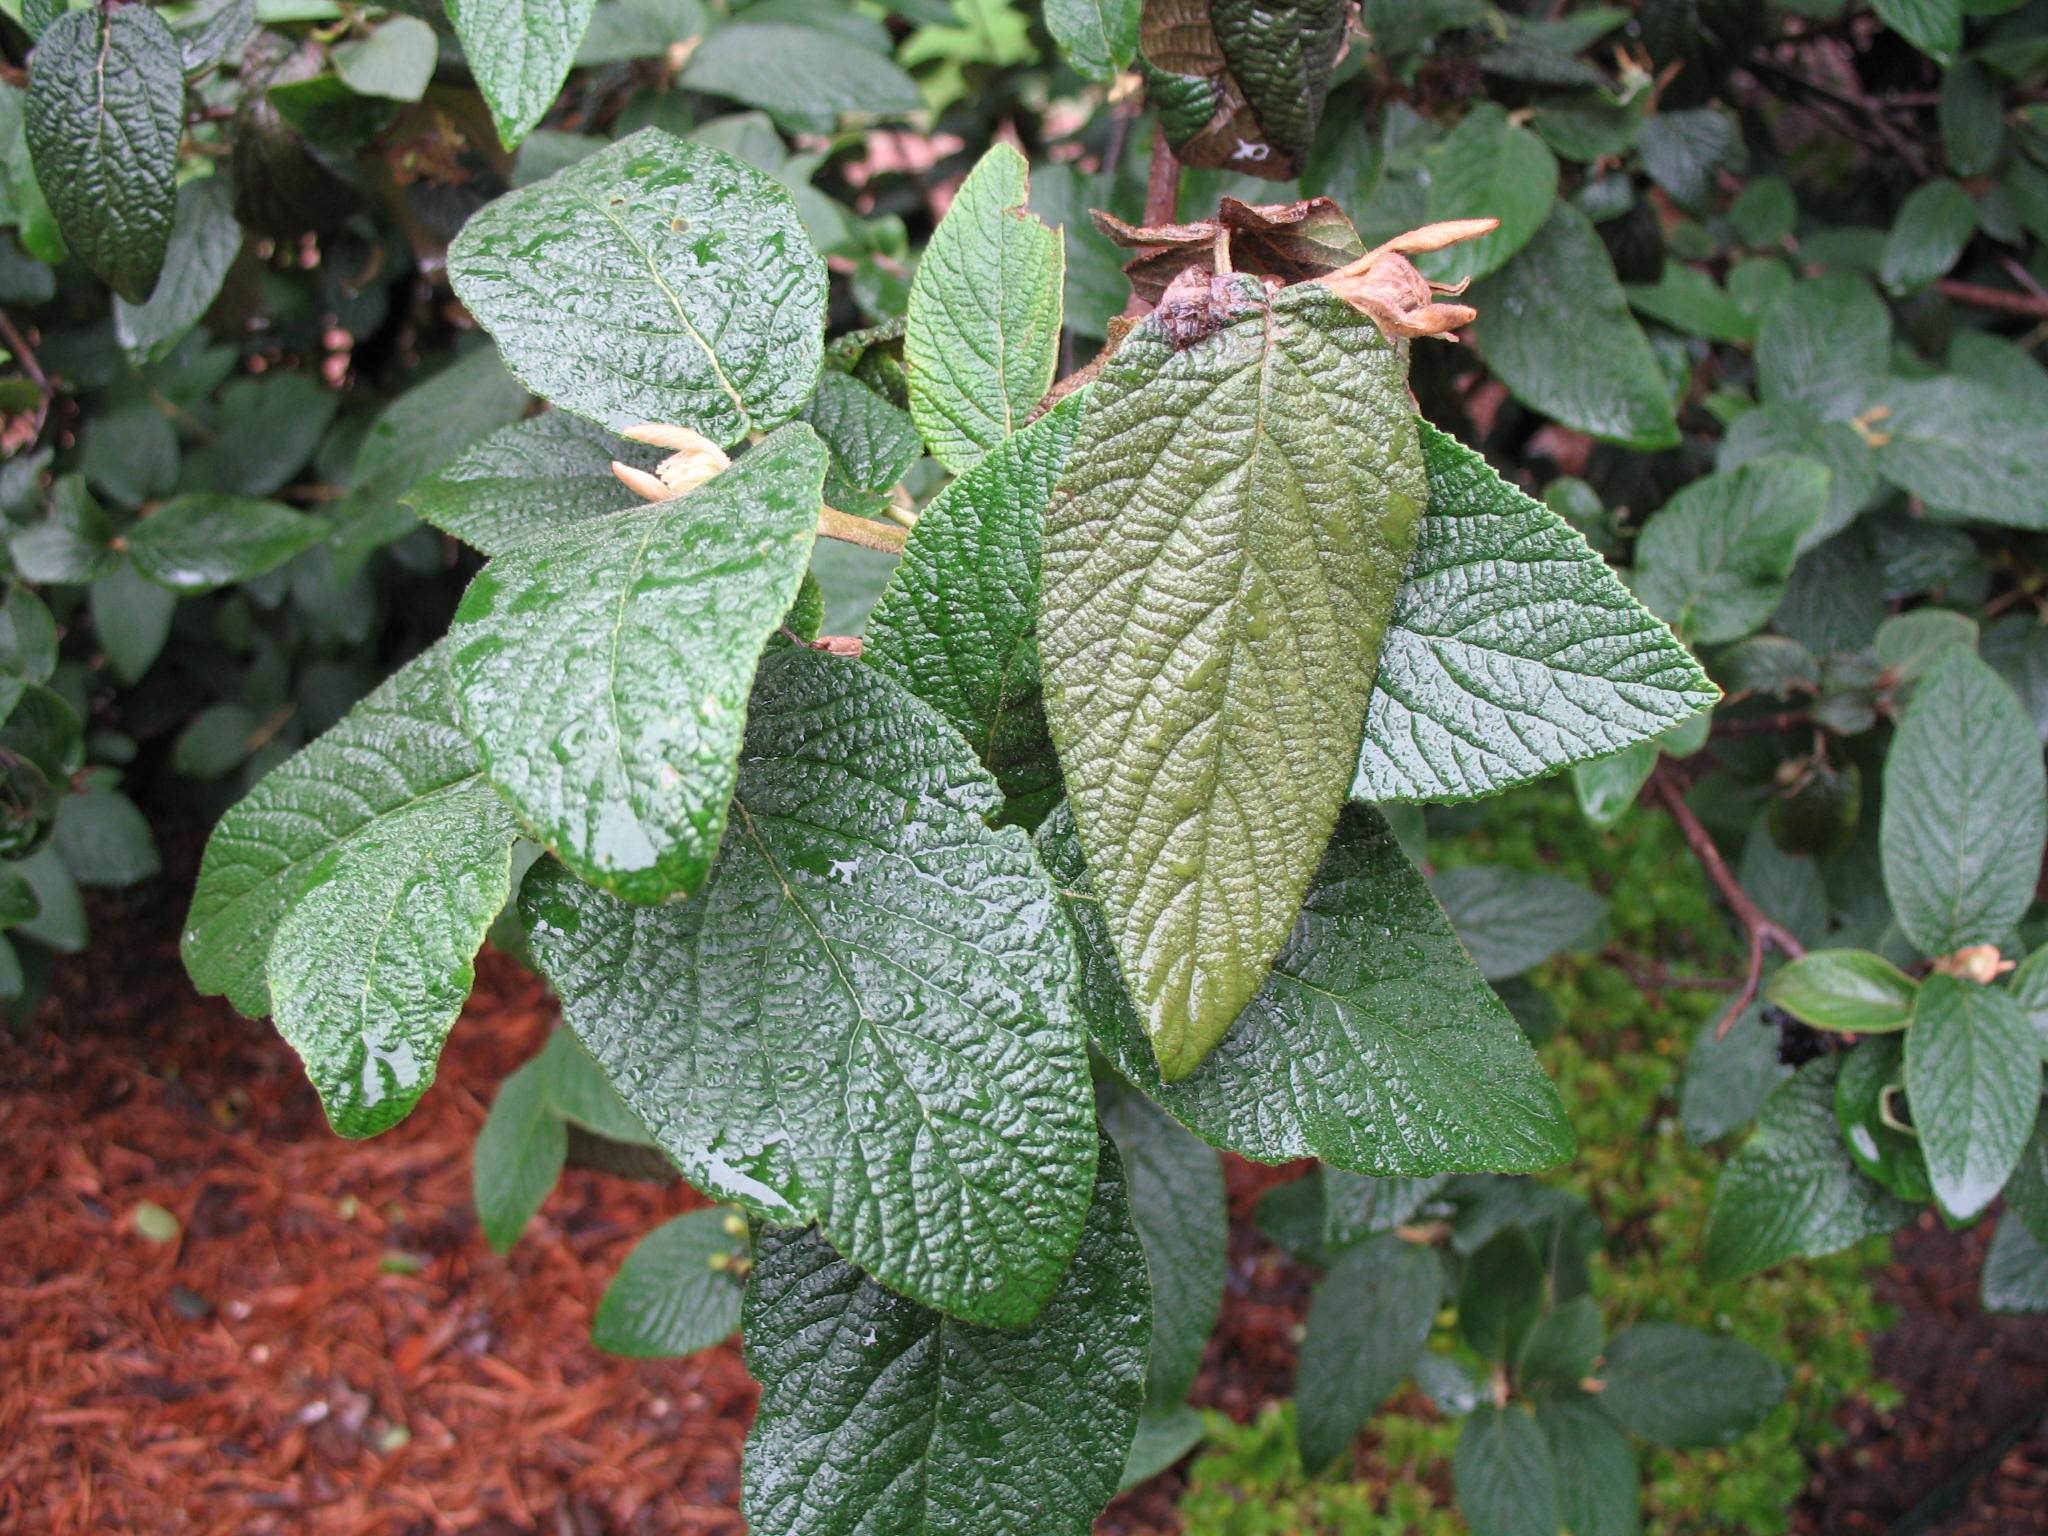 Viburnum x rhytidophylloides 'Willowwood'  / Viburnum x rhytidophylloides 'Willowwood'